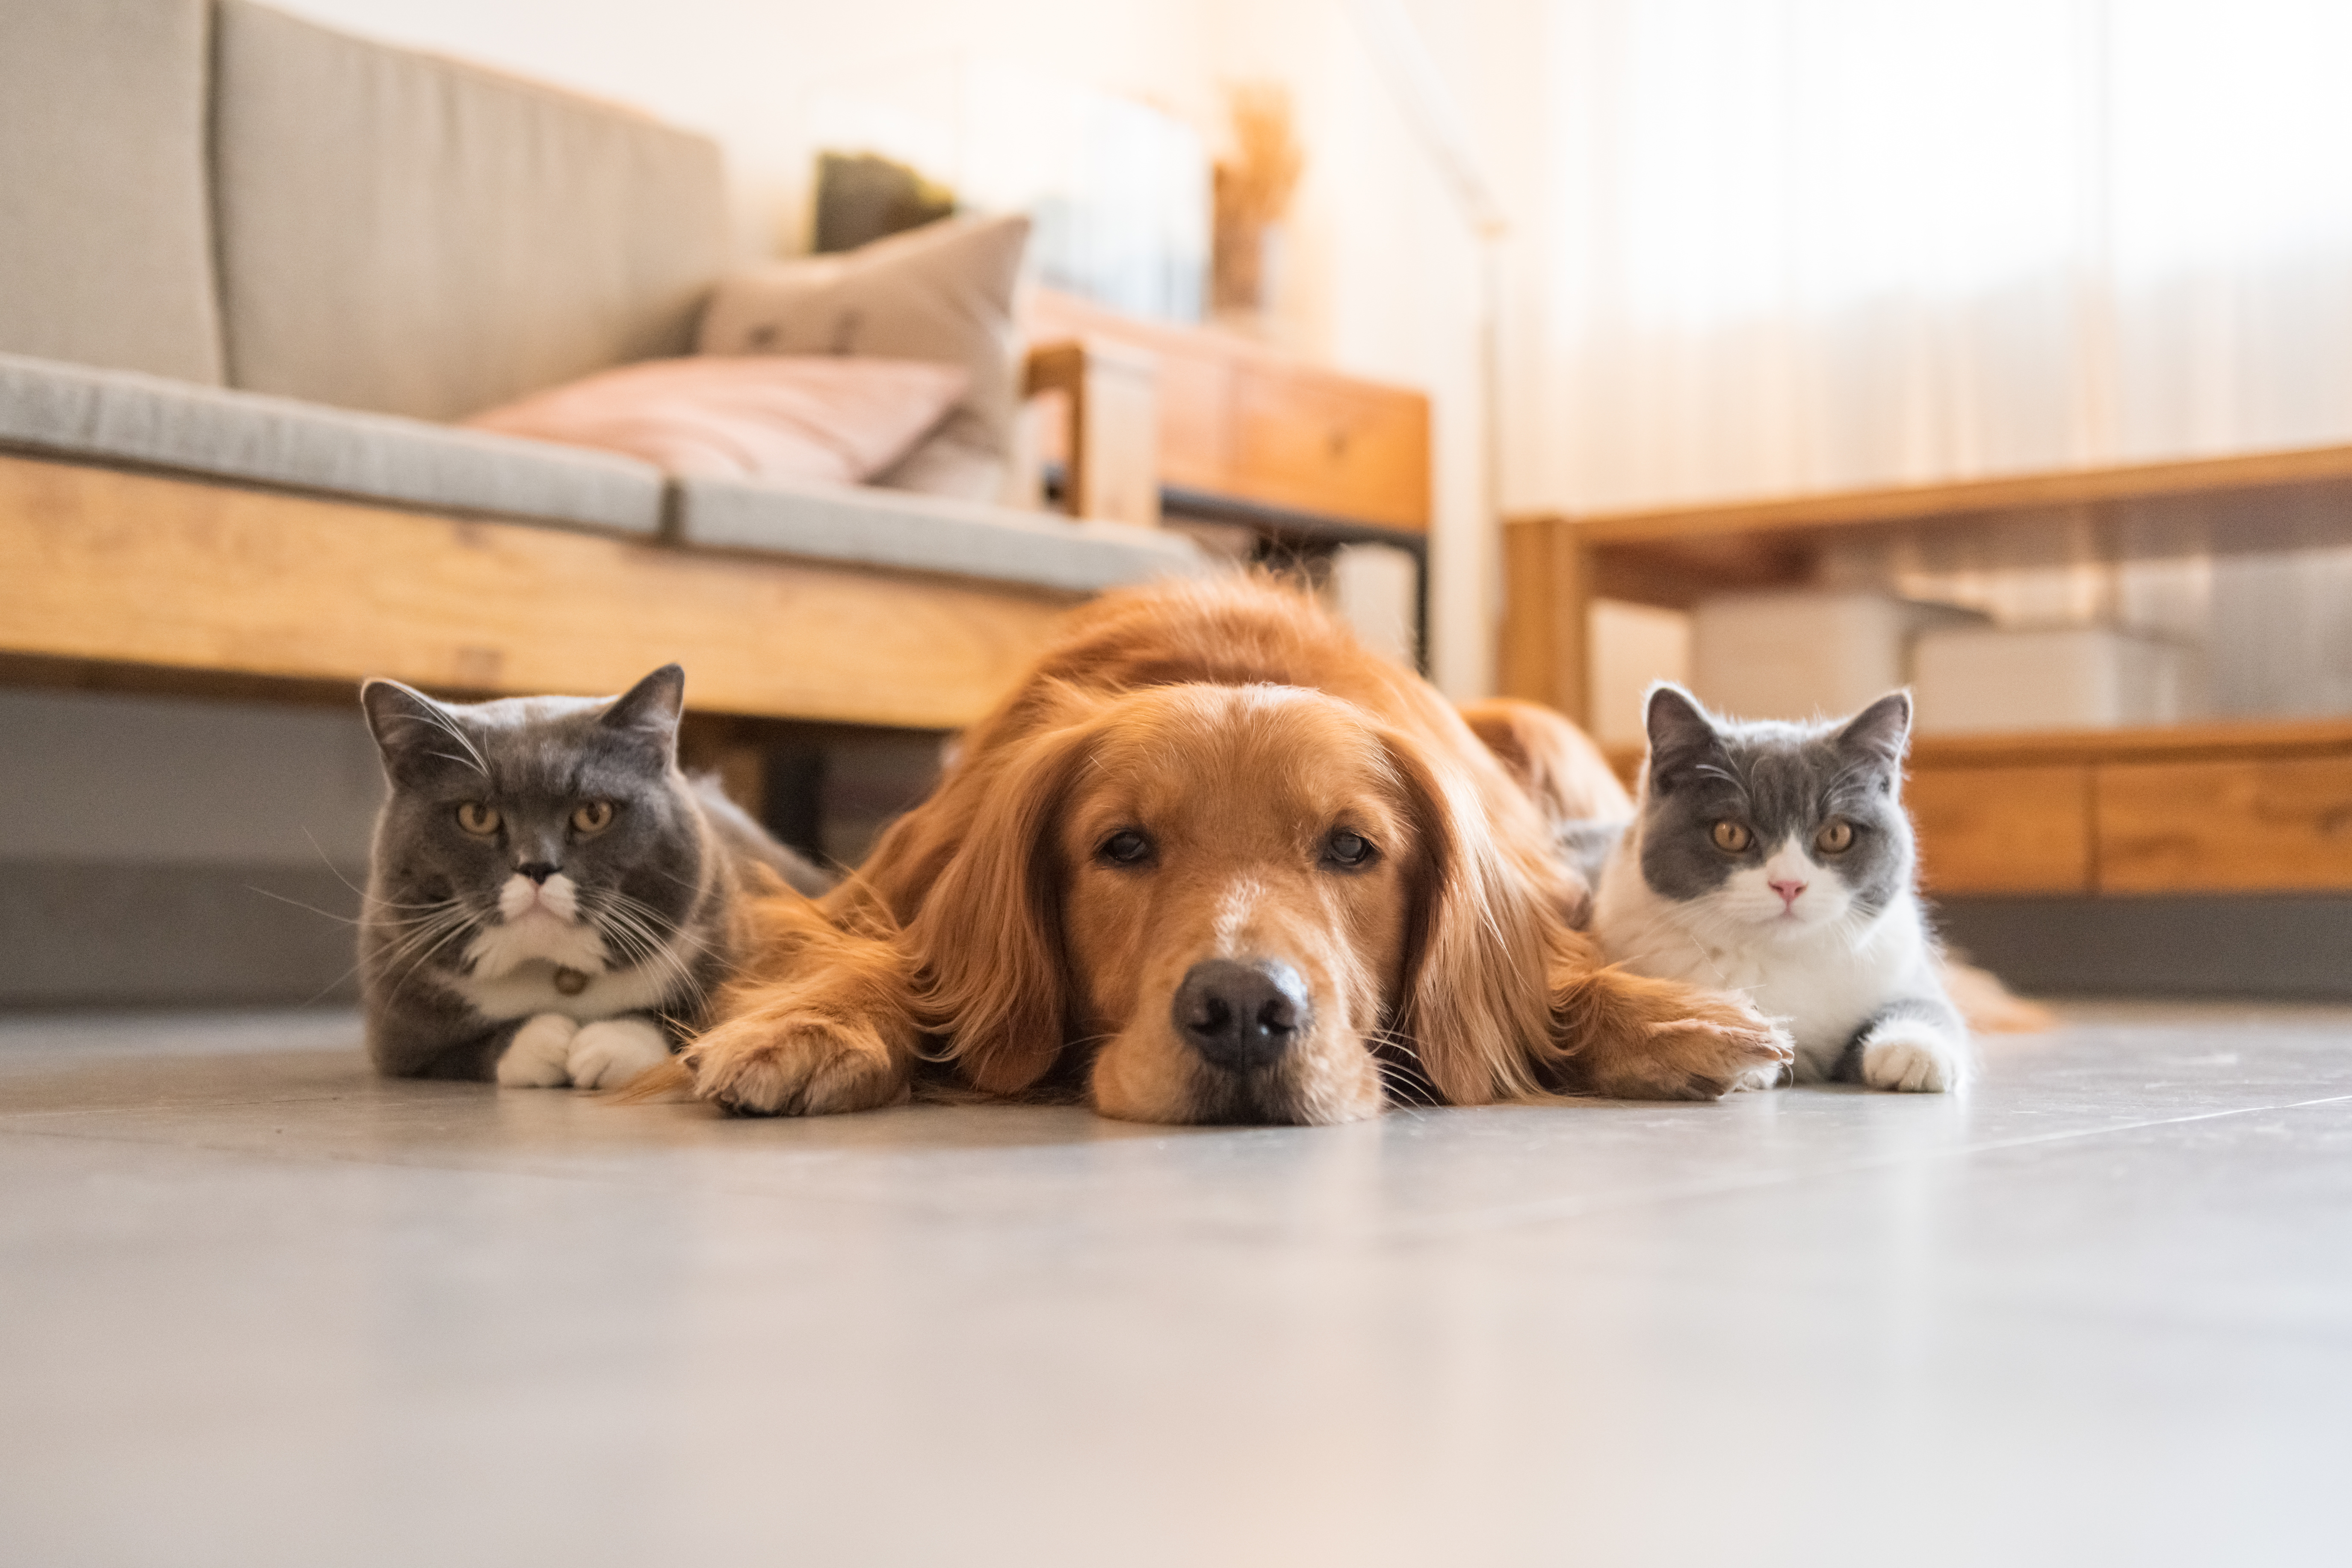 3 Steps to introduce a dog into a home with a cat